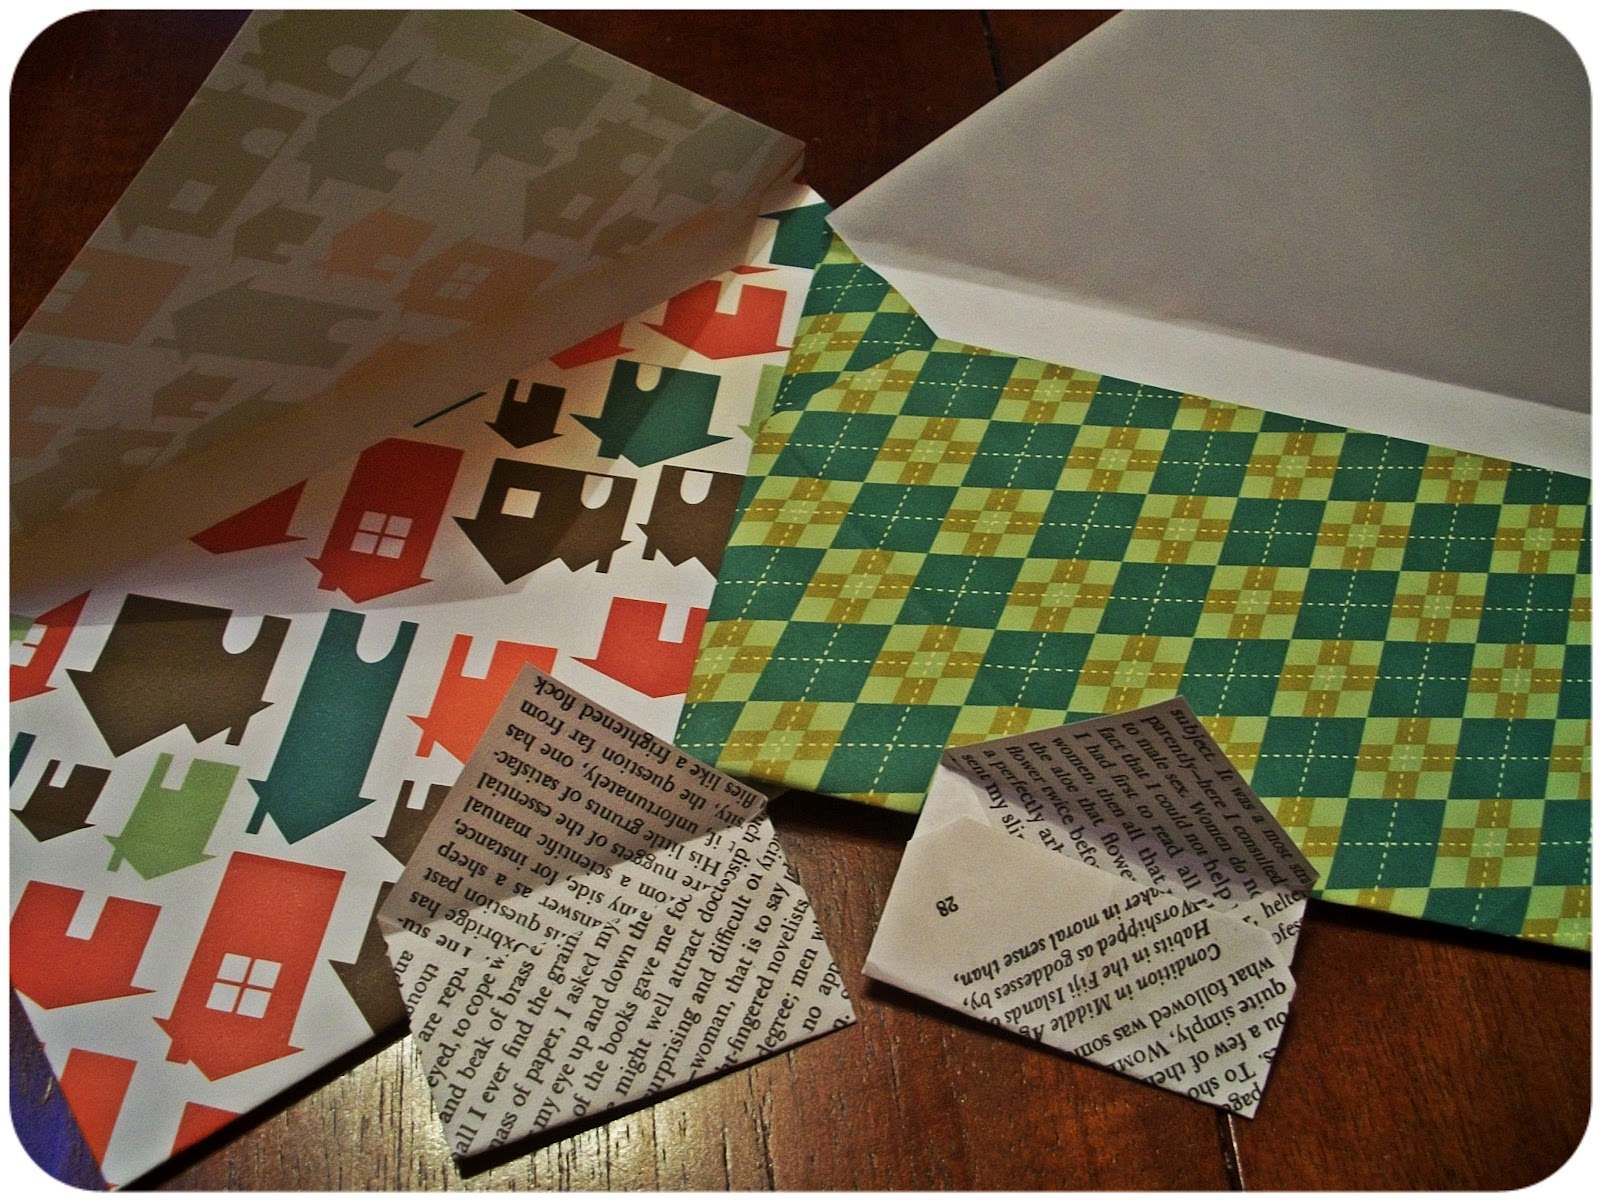 Scrapbook paper envelope - I Feel Like If You Get A Letter With An Exciting Envelope Then The Letter Inside Is Bound To Be Exciting Too D I Learned How To Make Envelopes Ages Ago